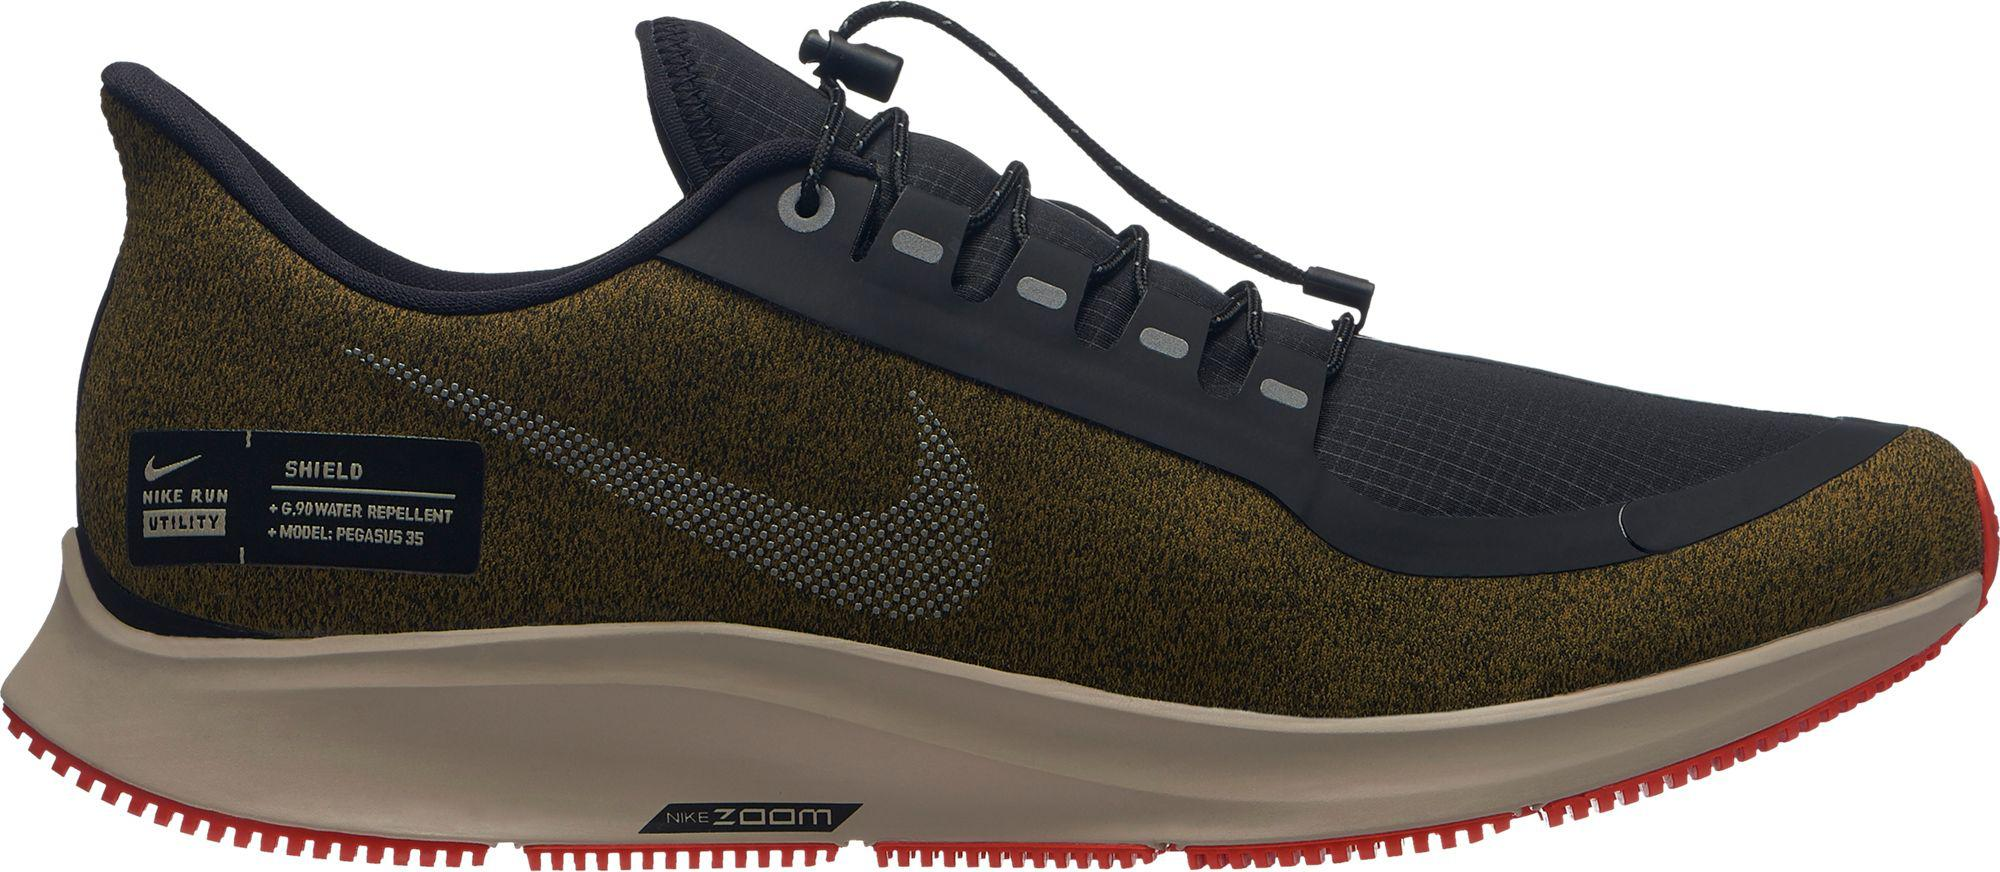 2a01f7ea282f6 Lyst - Nike Air Zoom Pegasus 35 Shield Running Shoes in Black for Men